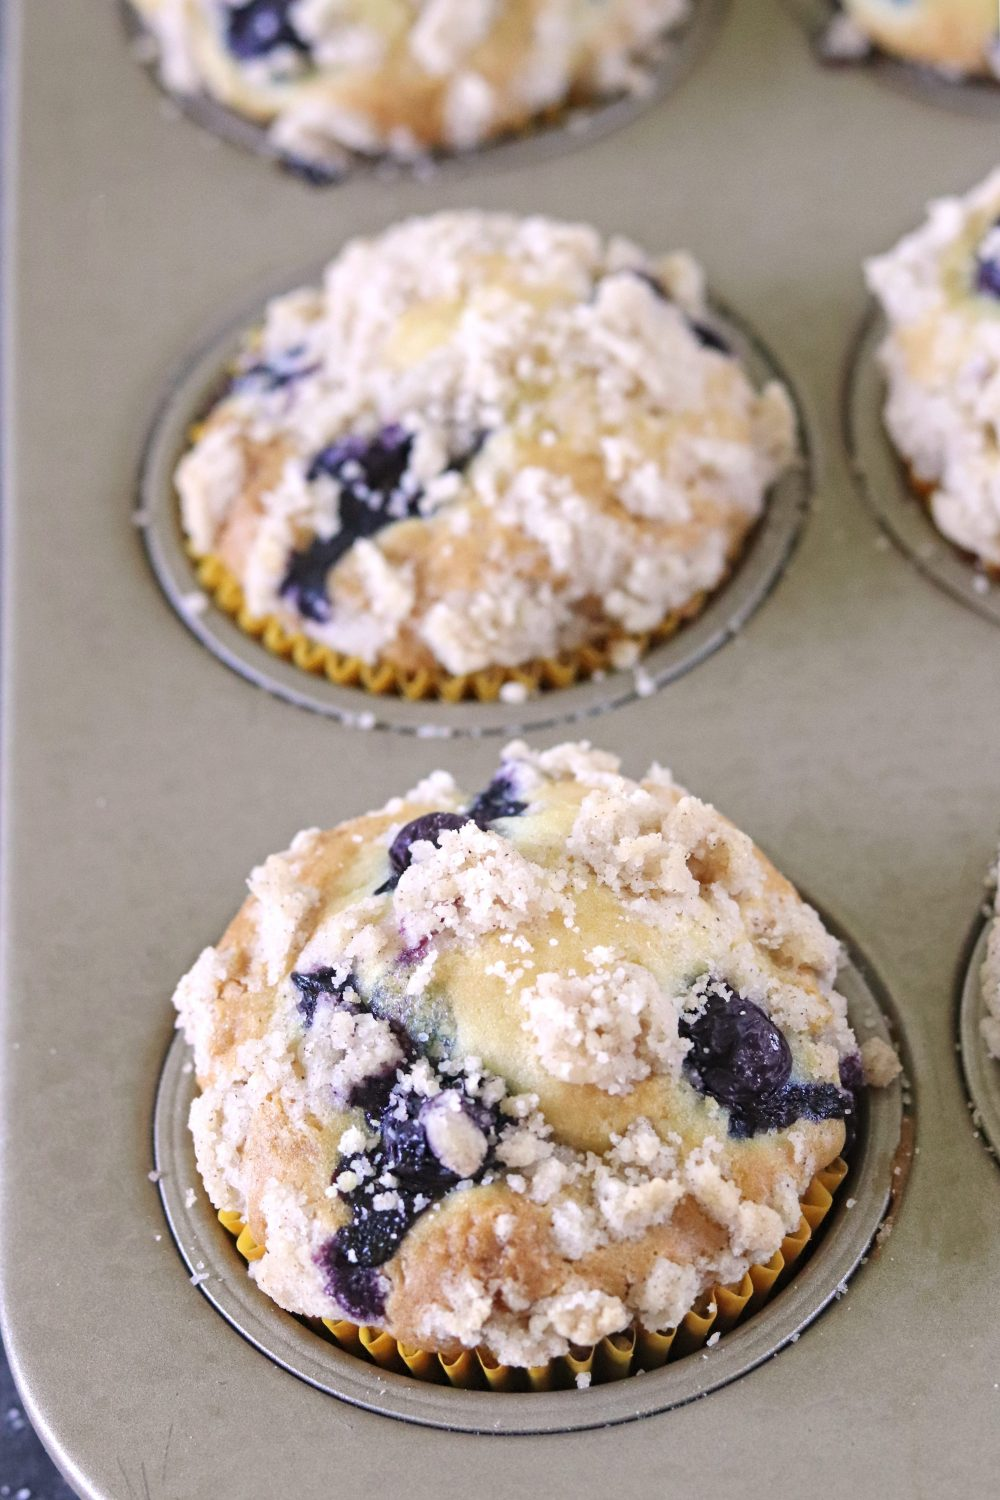 Baked Blueberry Muffins With Streusel Crumb Topping in tray